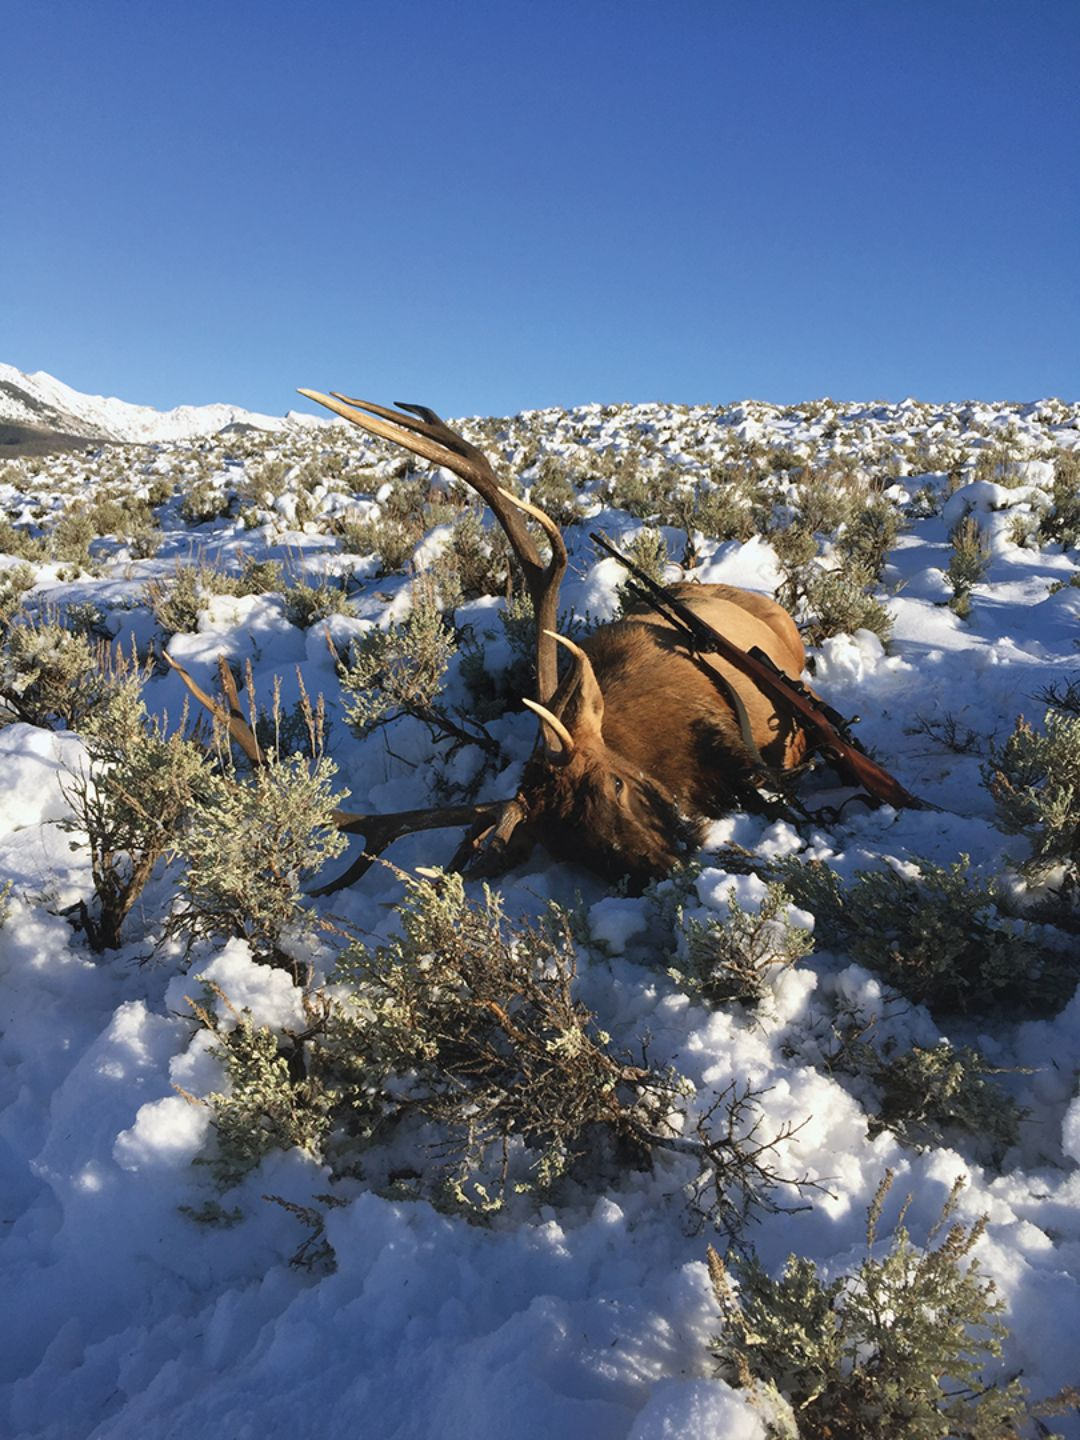 Patience for a good shot paid off with this dandy Colorado bull.